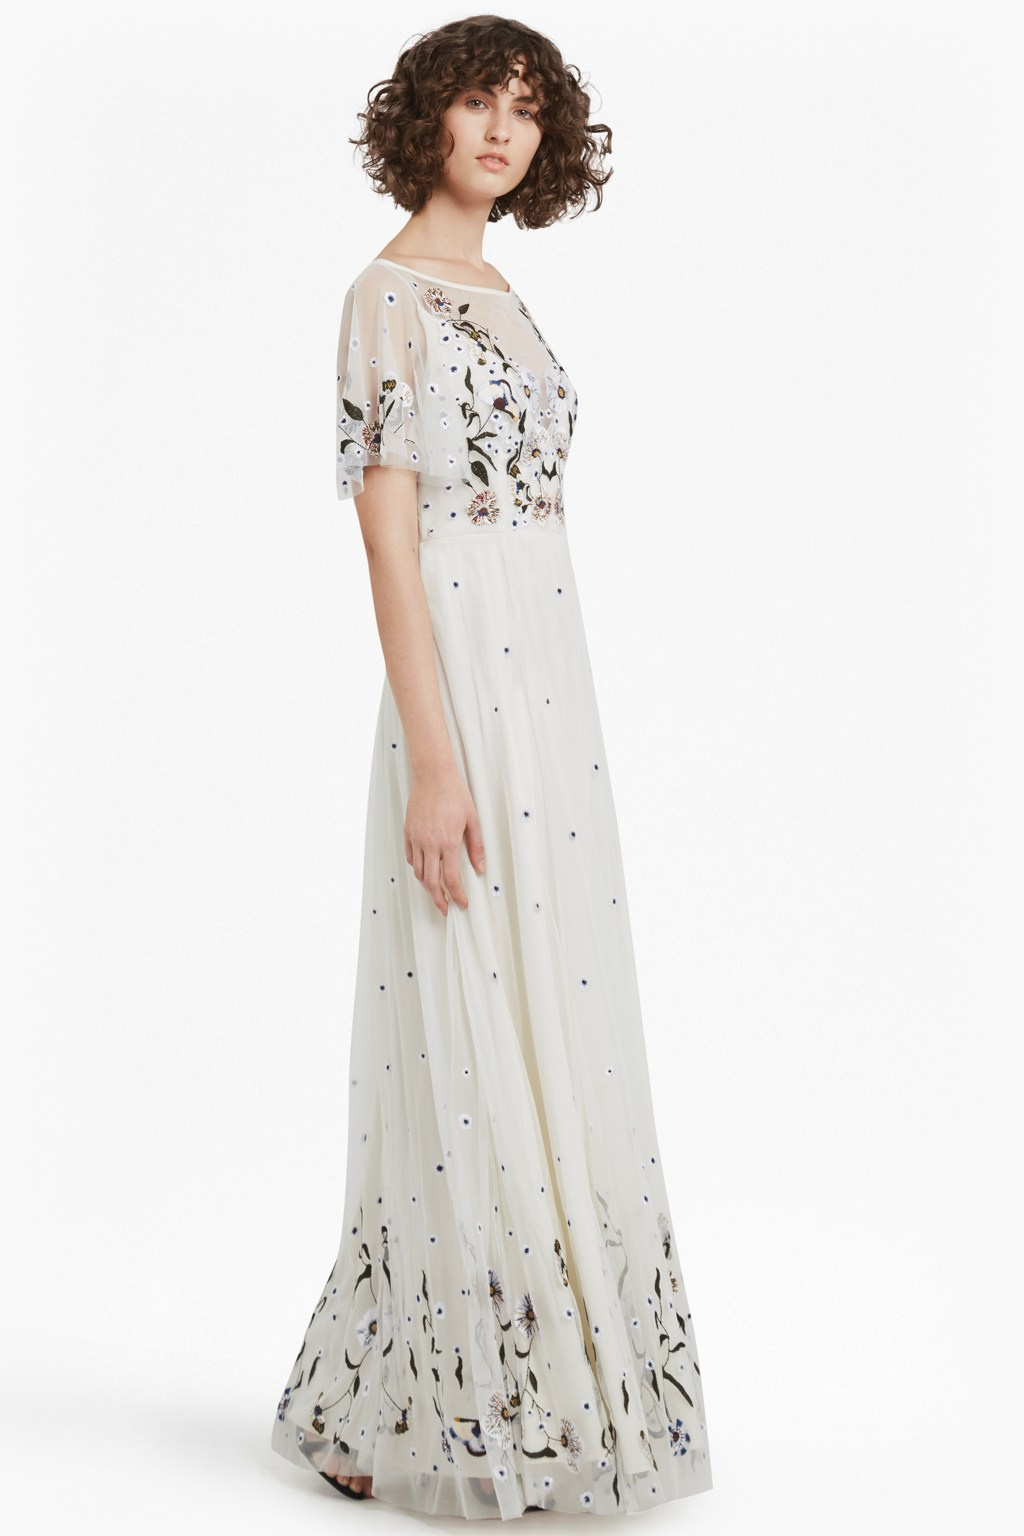 French connection maxi dresses 2018